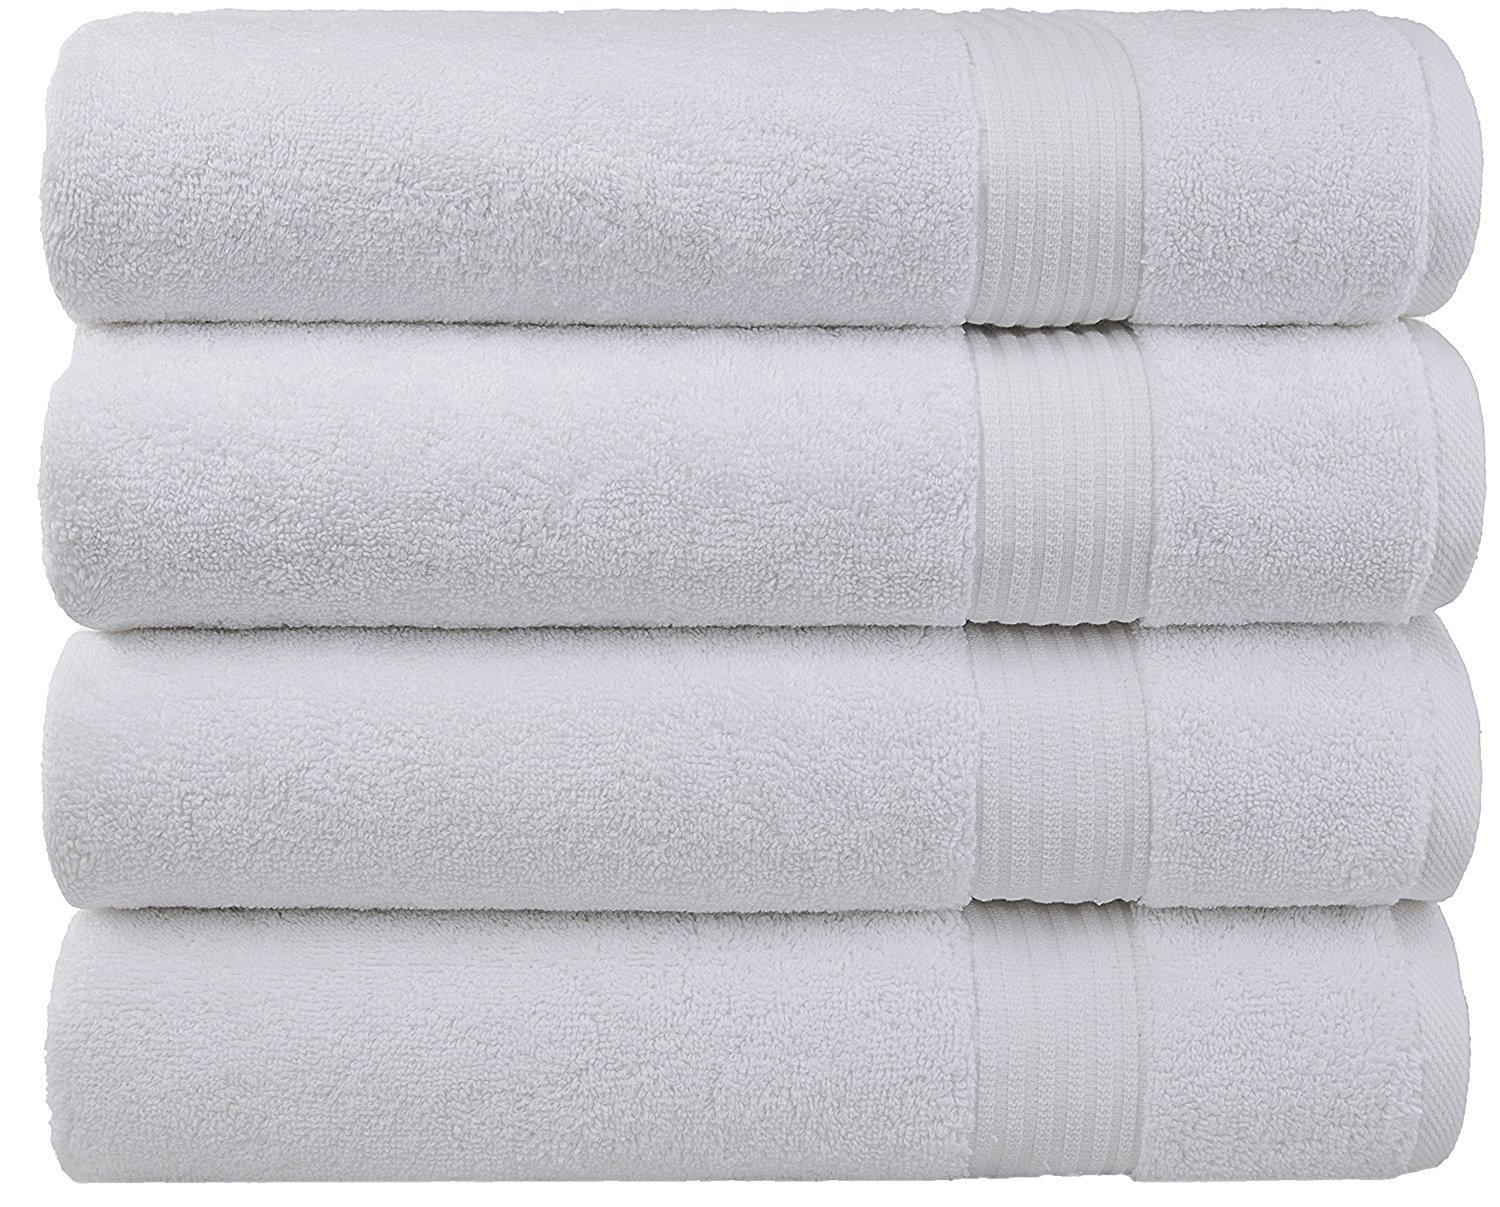 Cotton Paradise 2018 (New Collection) Luxury Hotel & Spa Collection Oversized 27'x54' Extra Large Bath Towel Set, 100% Combed Cotton and Eco-Friendly, Set of 4 (Snow White)